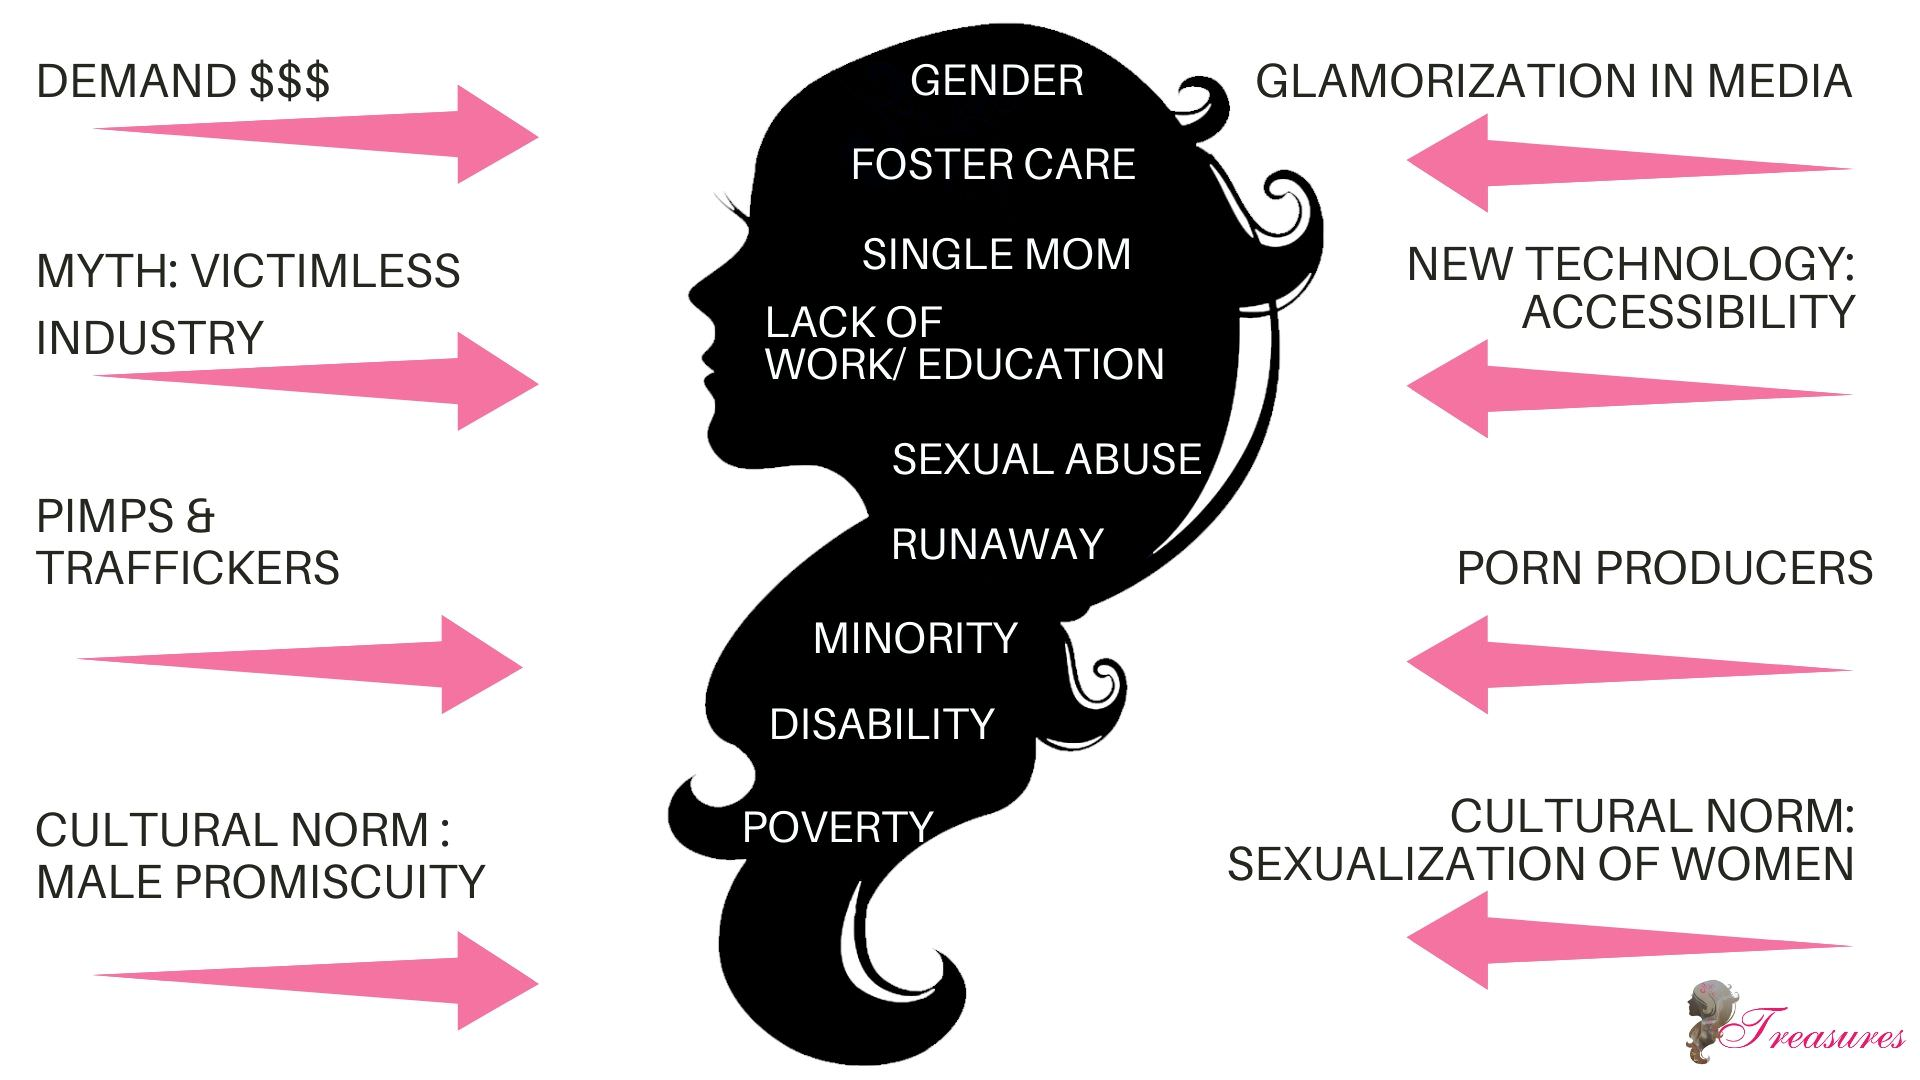 Prostitution into why girls go do Affluent, Educated